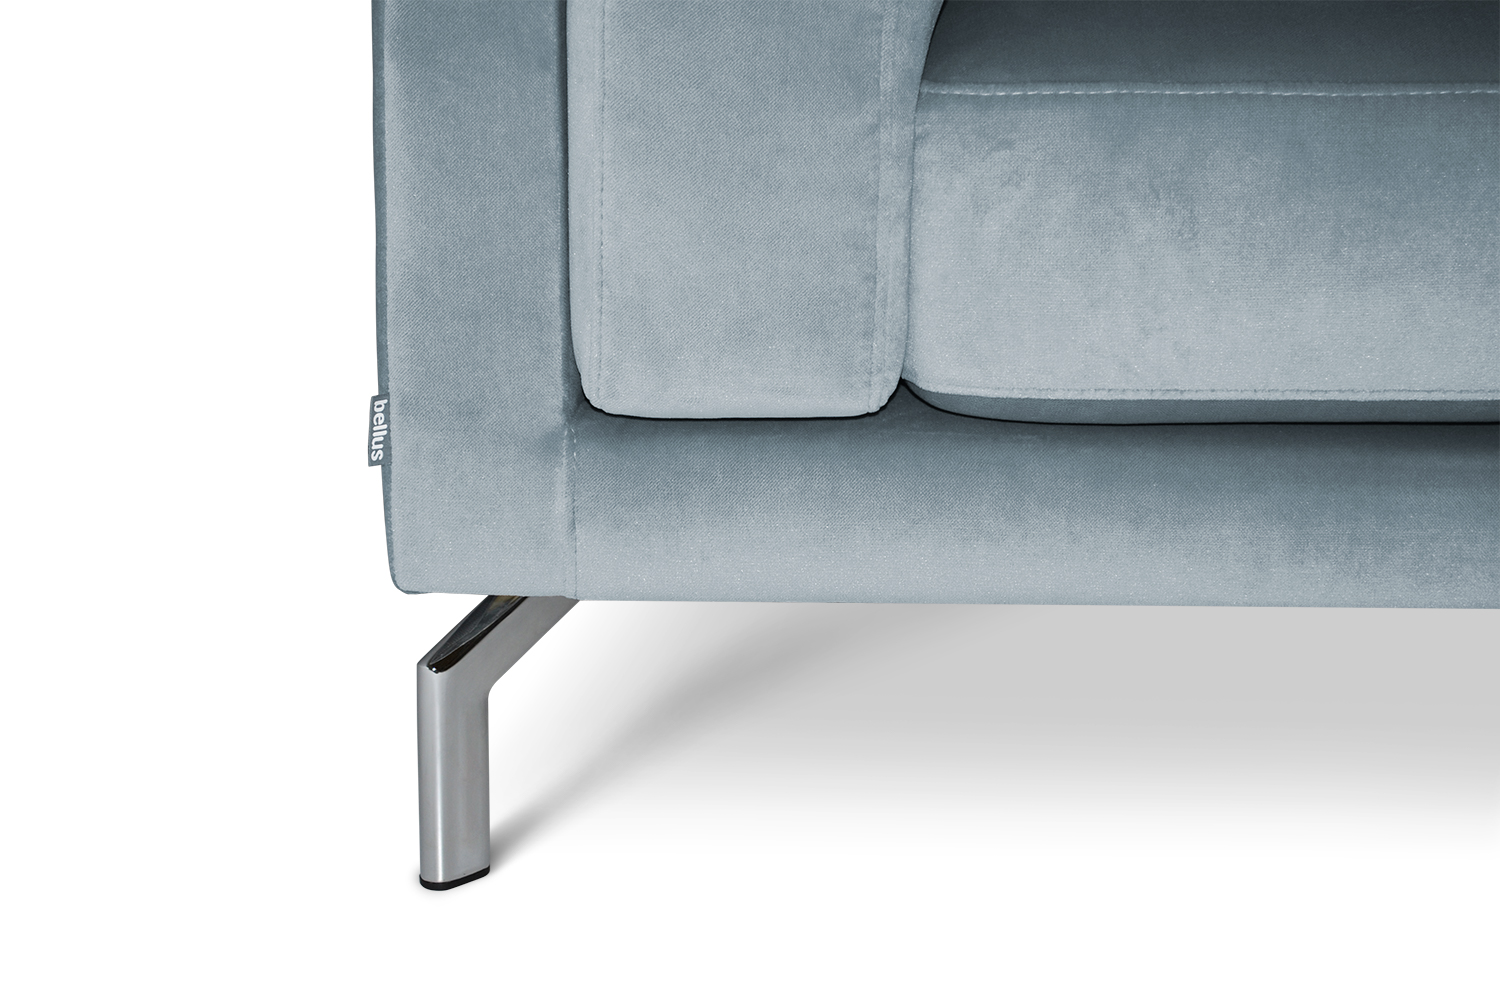 In picture Manhattan 3 Div; fabric: Juke 149; Leg 83 Stainless Steel (detail picture).